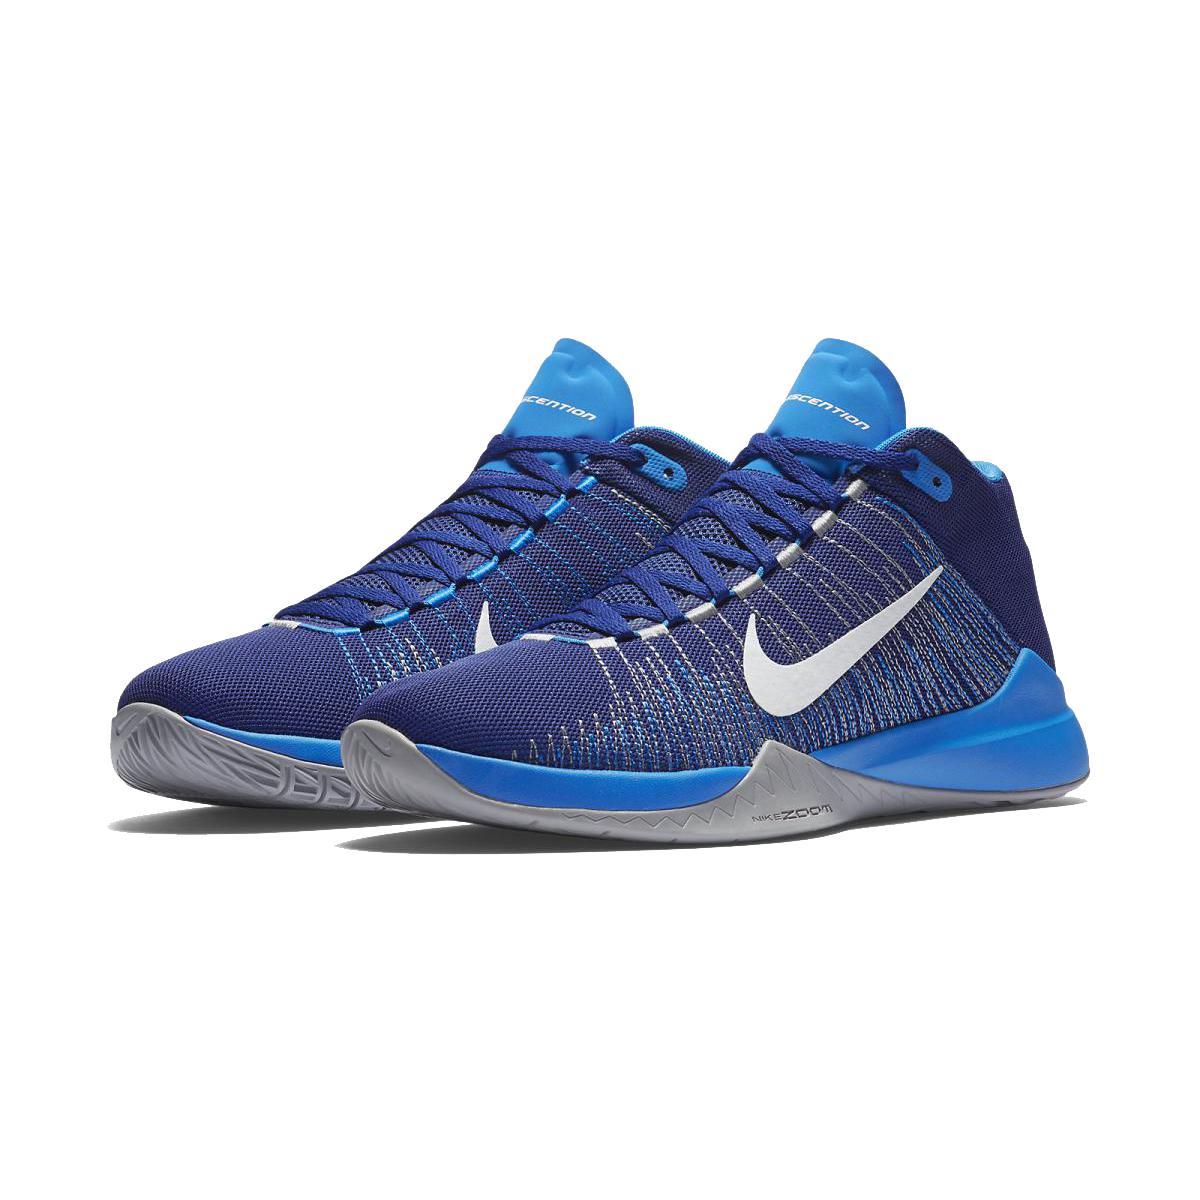 premium selection c132d 33a67 Nike Zoom Ascention